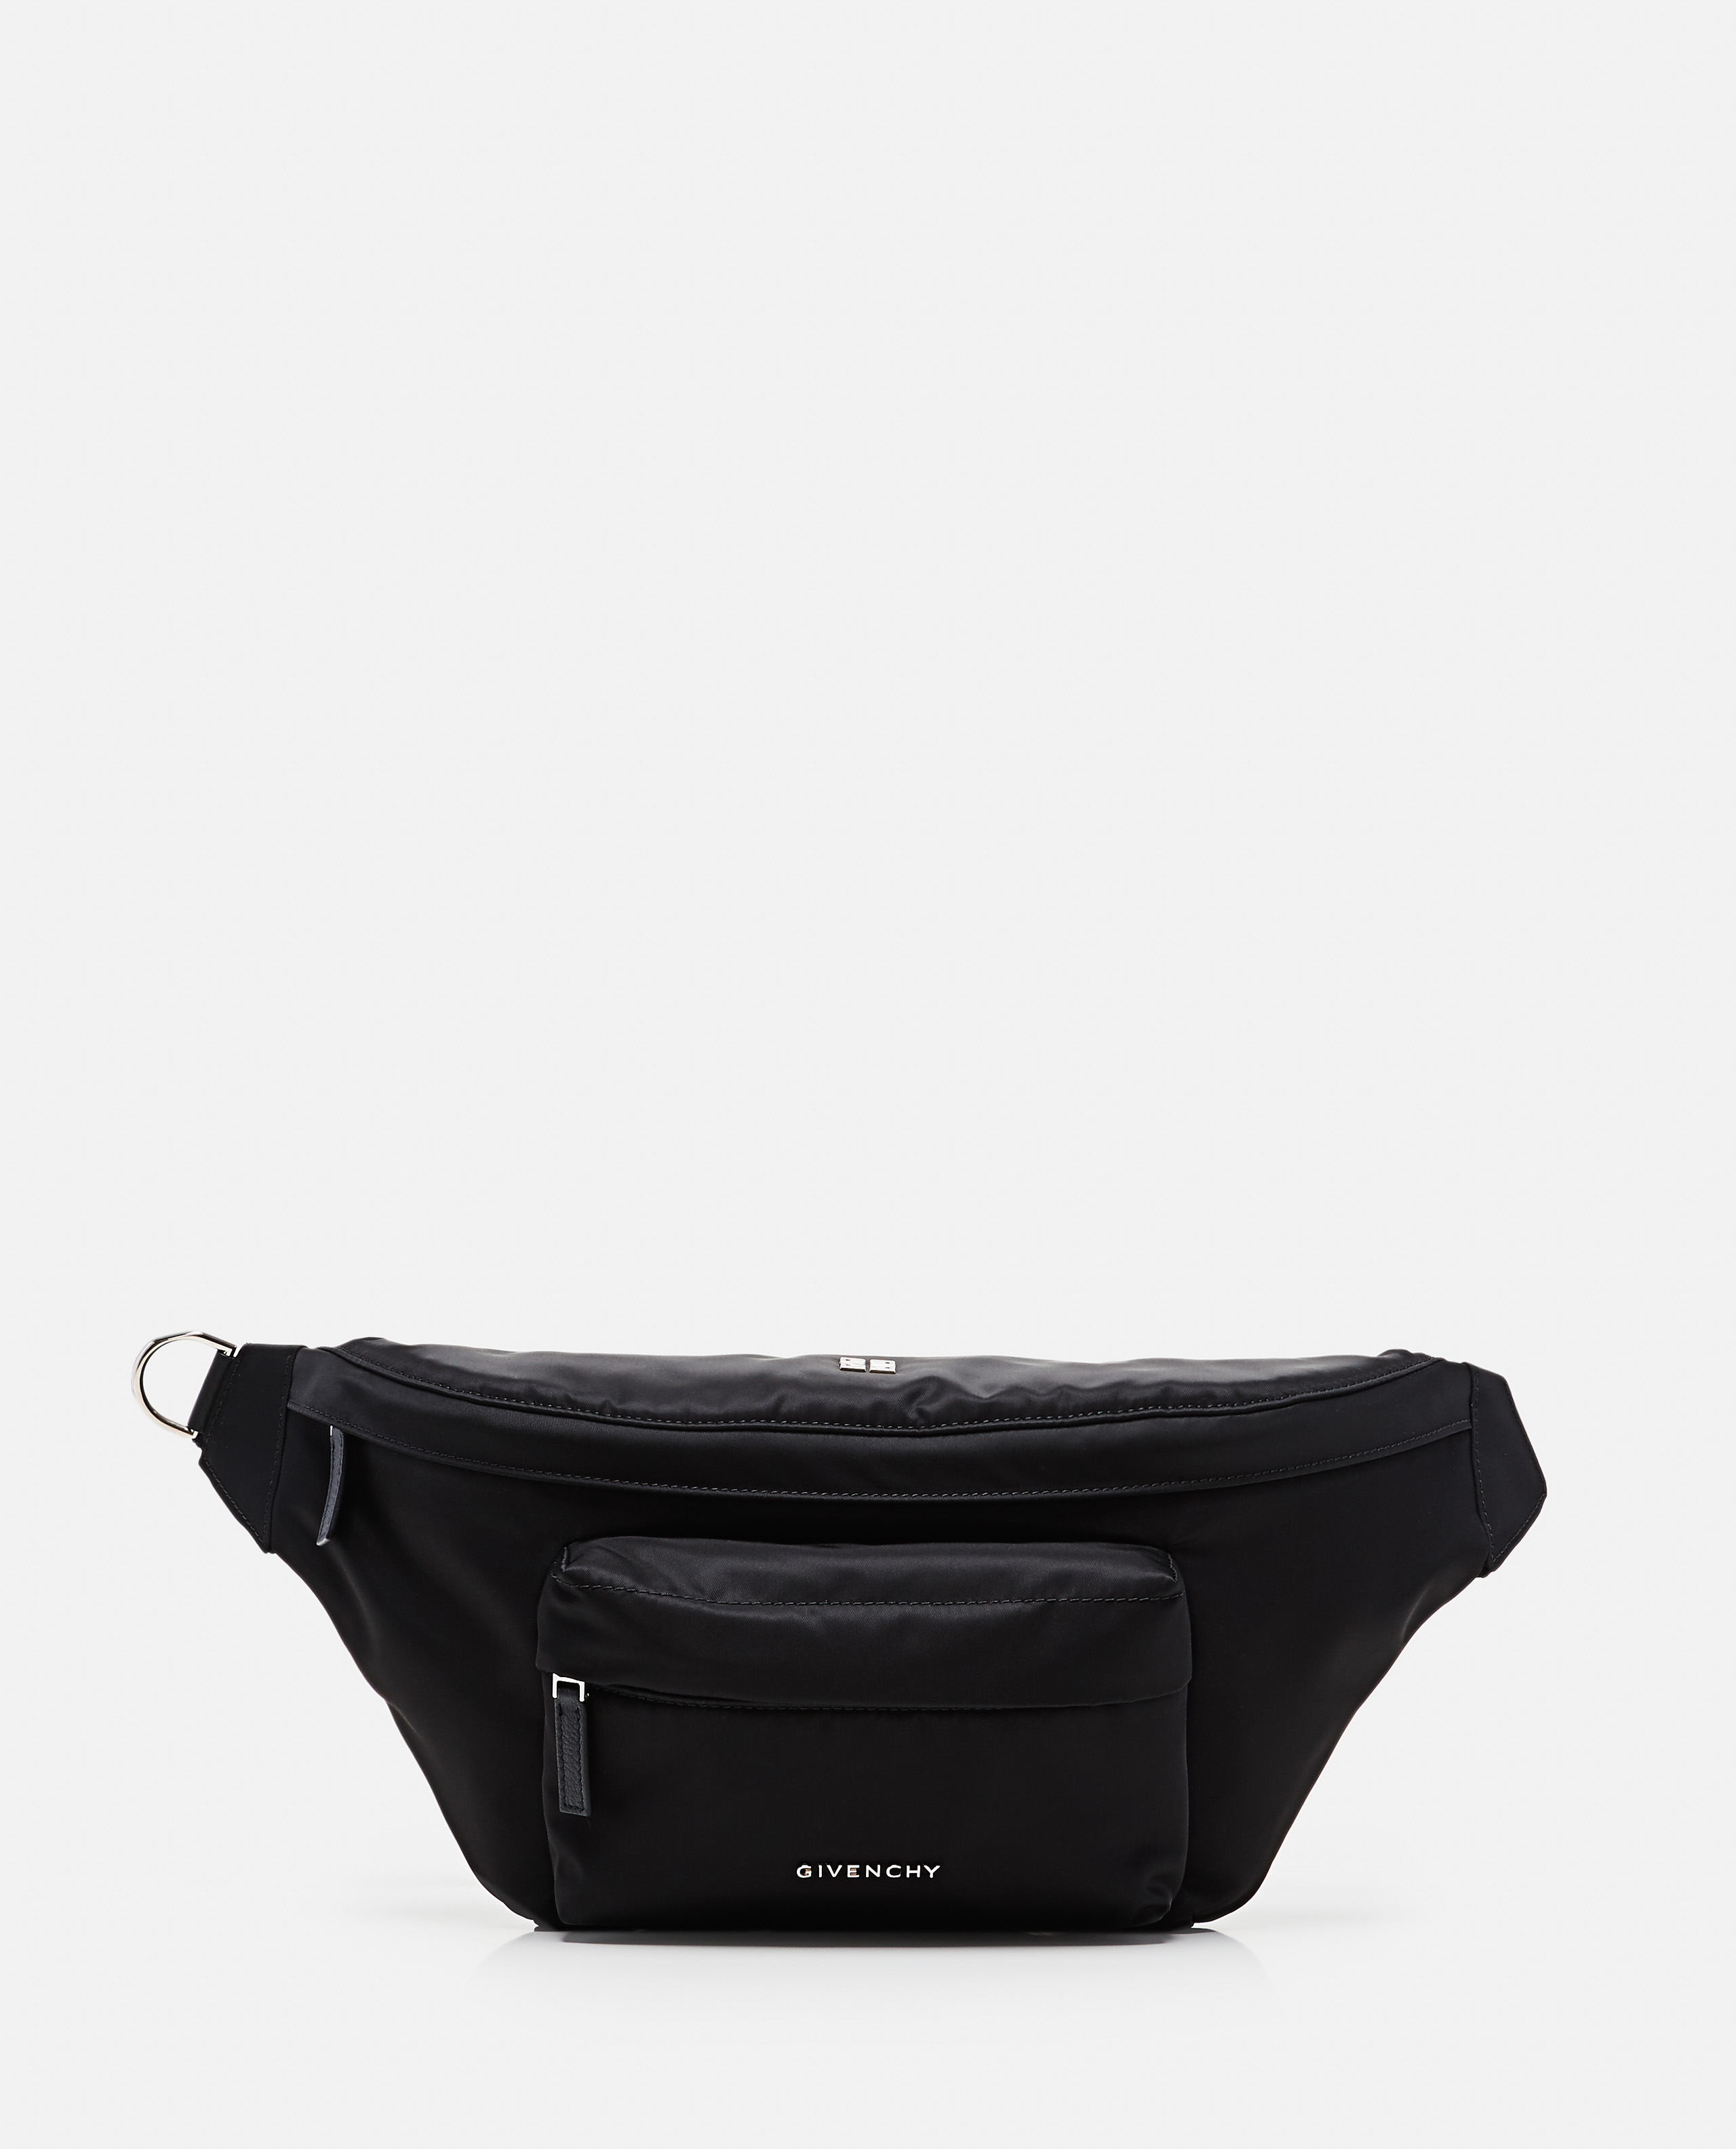 GIVENCHY GIVENCHY ESSENTIAL   NYLON BUMBAG